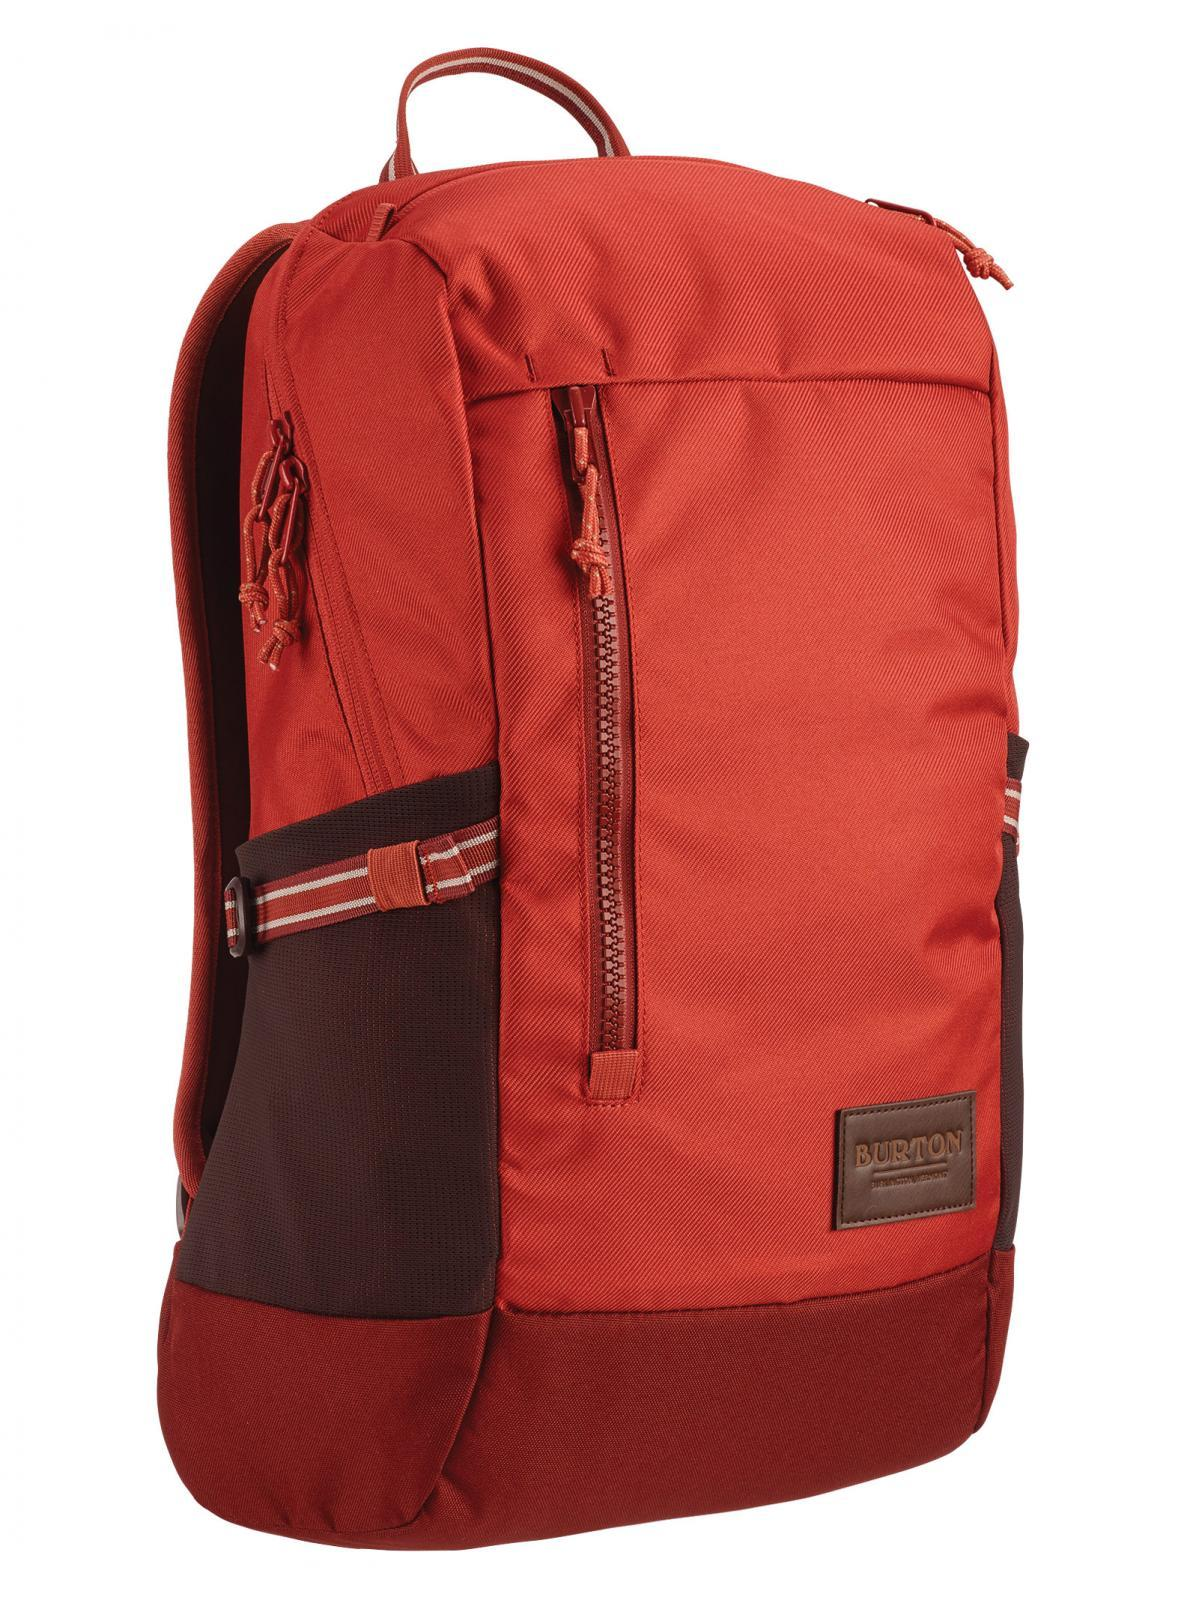 Burton Prospect 2.0 20L Backpack